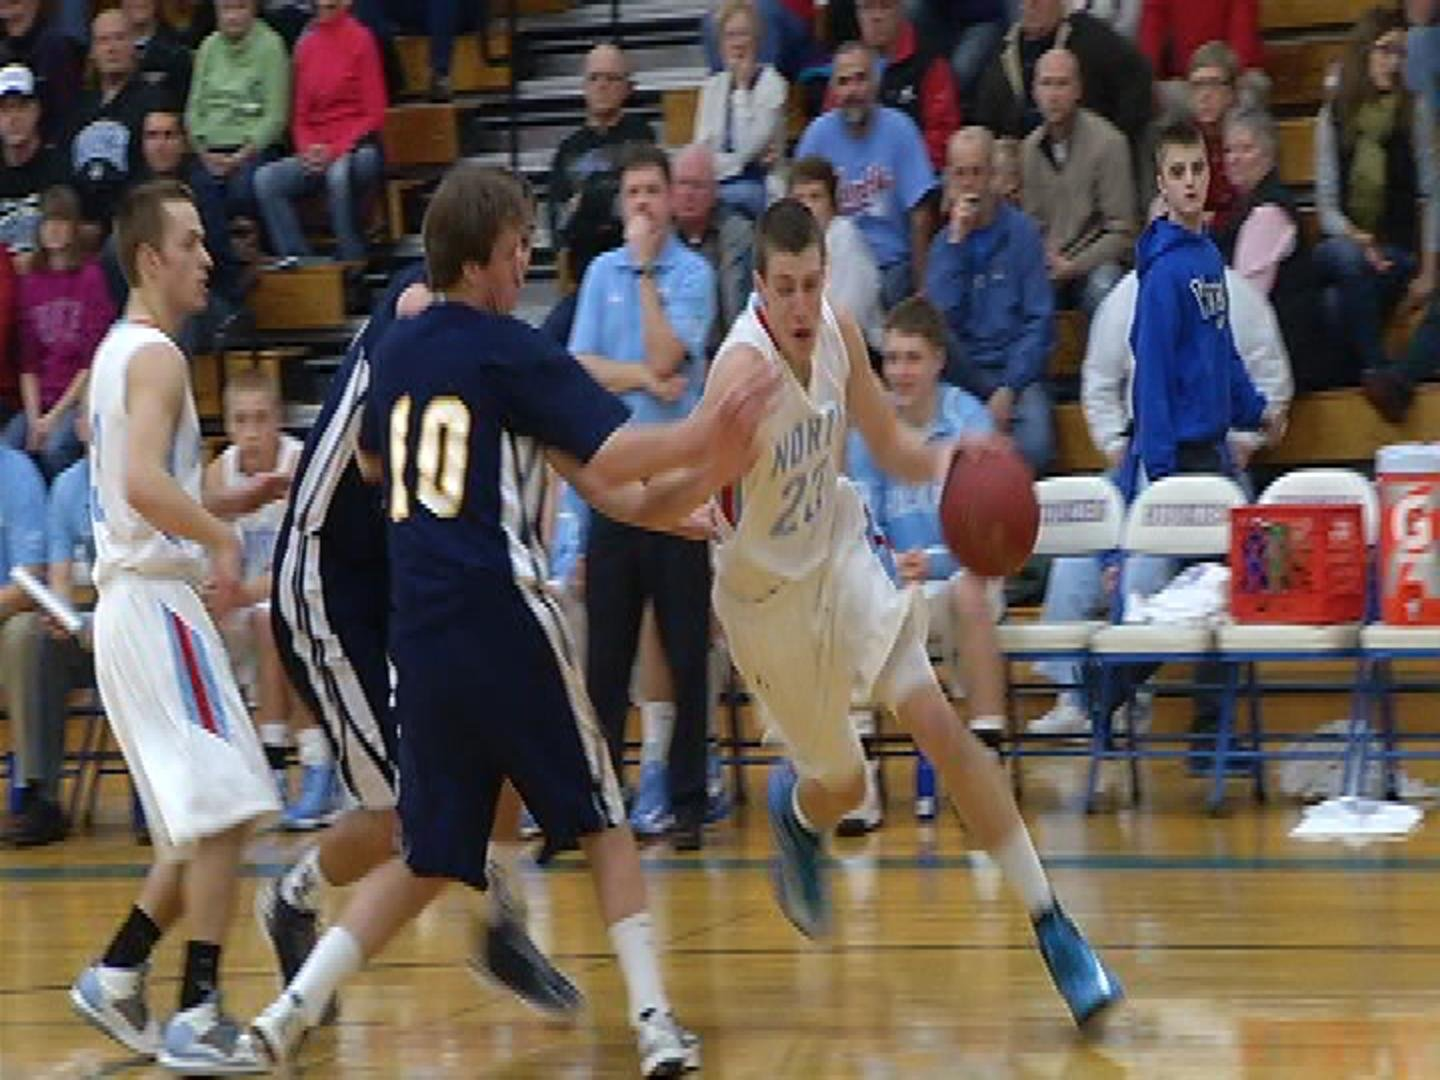 EC North's Josh Weix drives to the hoop for 2 of his team-high 11 in a win over River Falls